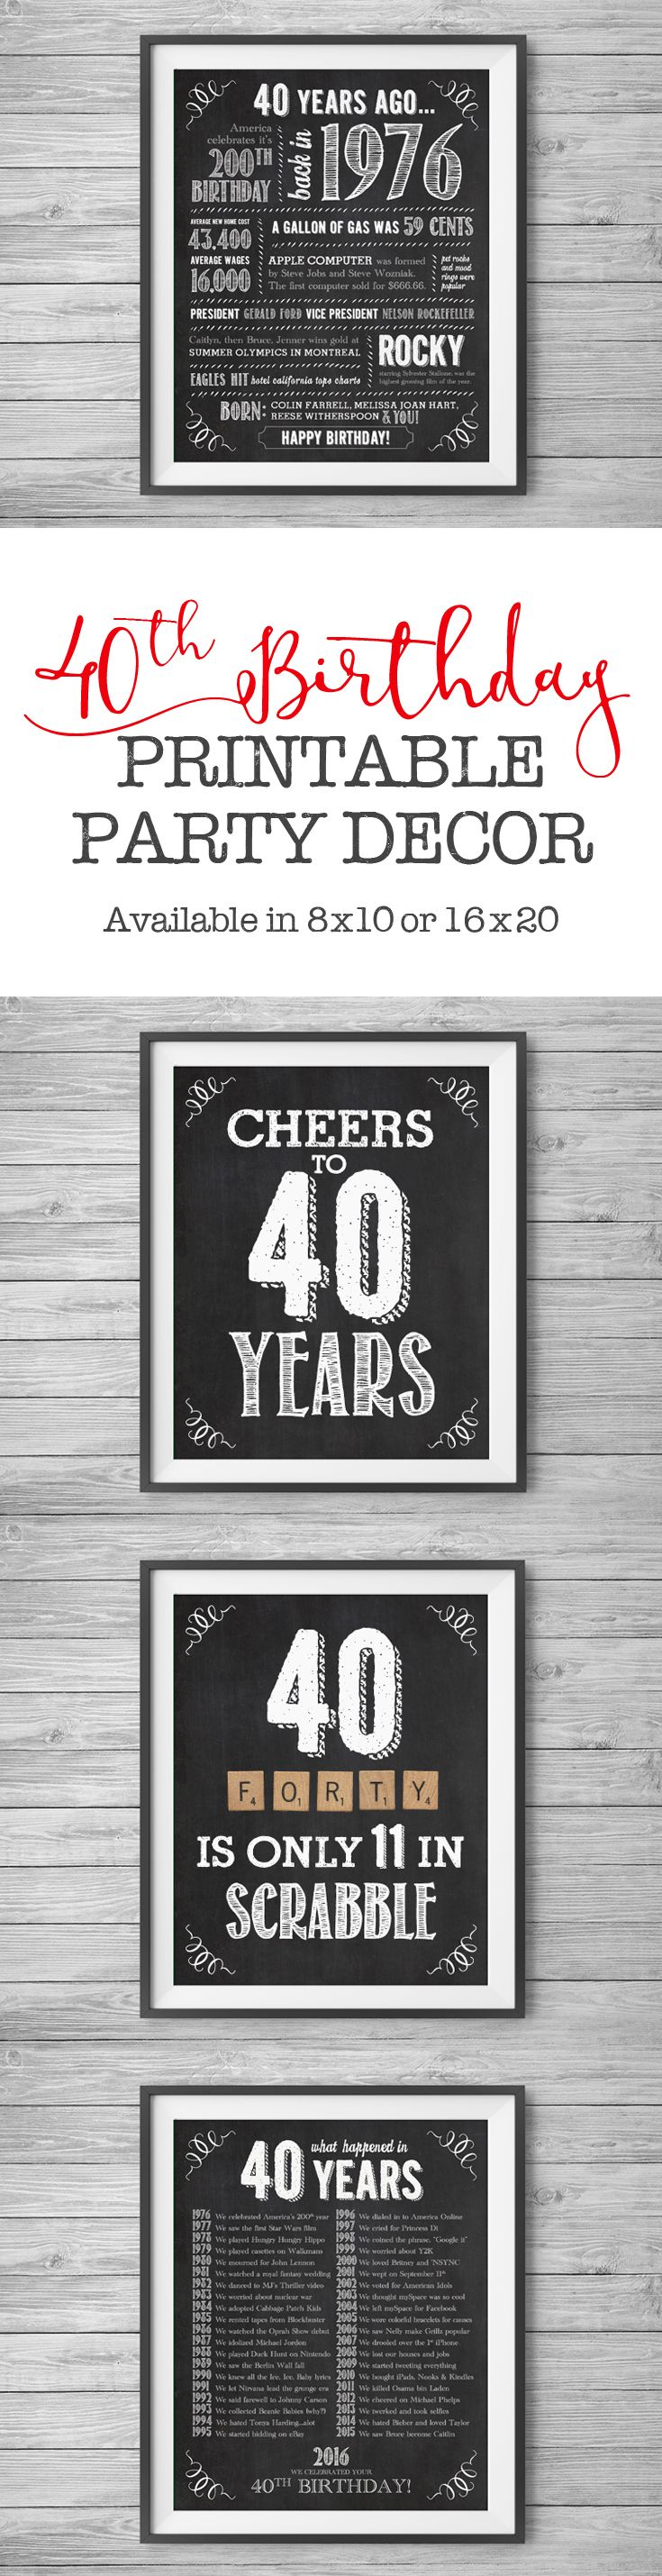 #40th Birthday, Printable Party Decor Supplies, 4 Unique 8x10 Signs, Instant Digital Downloads, DIY Print at Home by #NviteCP